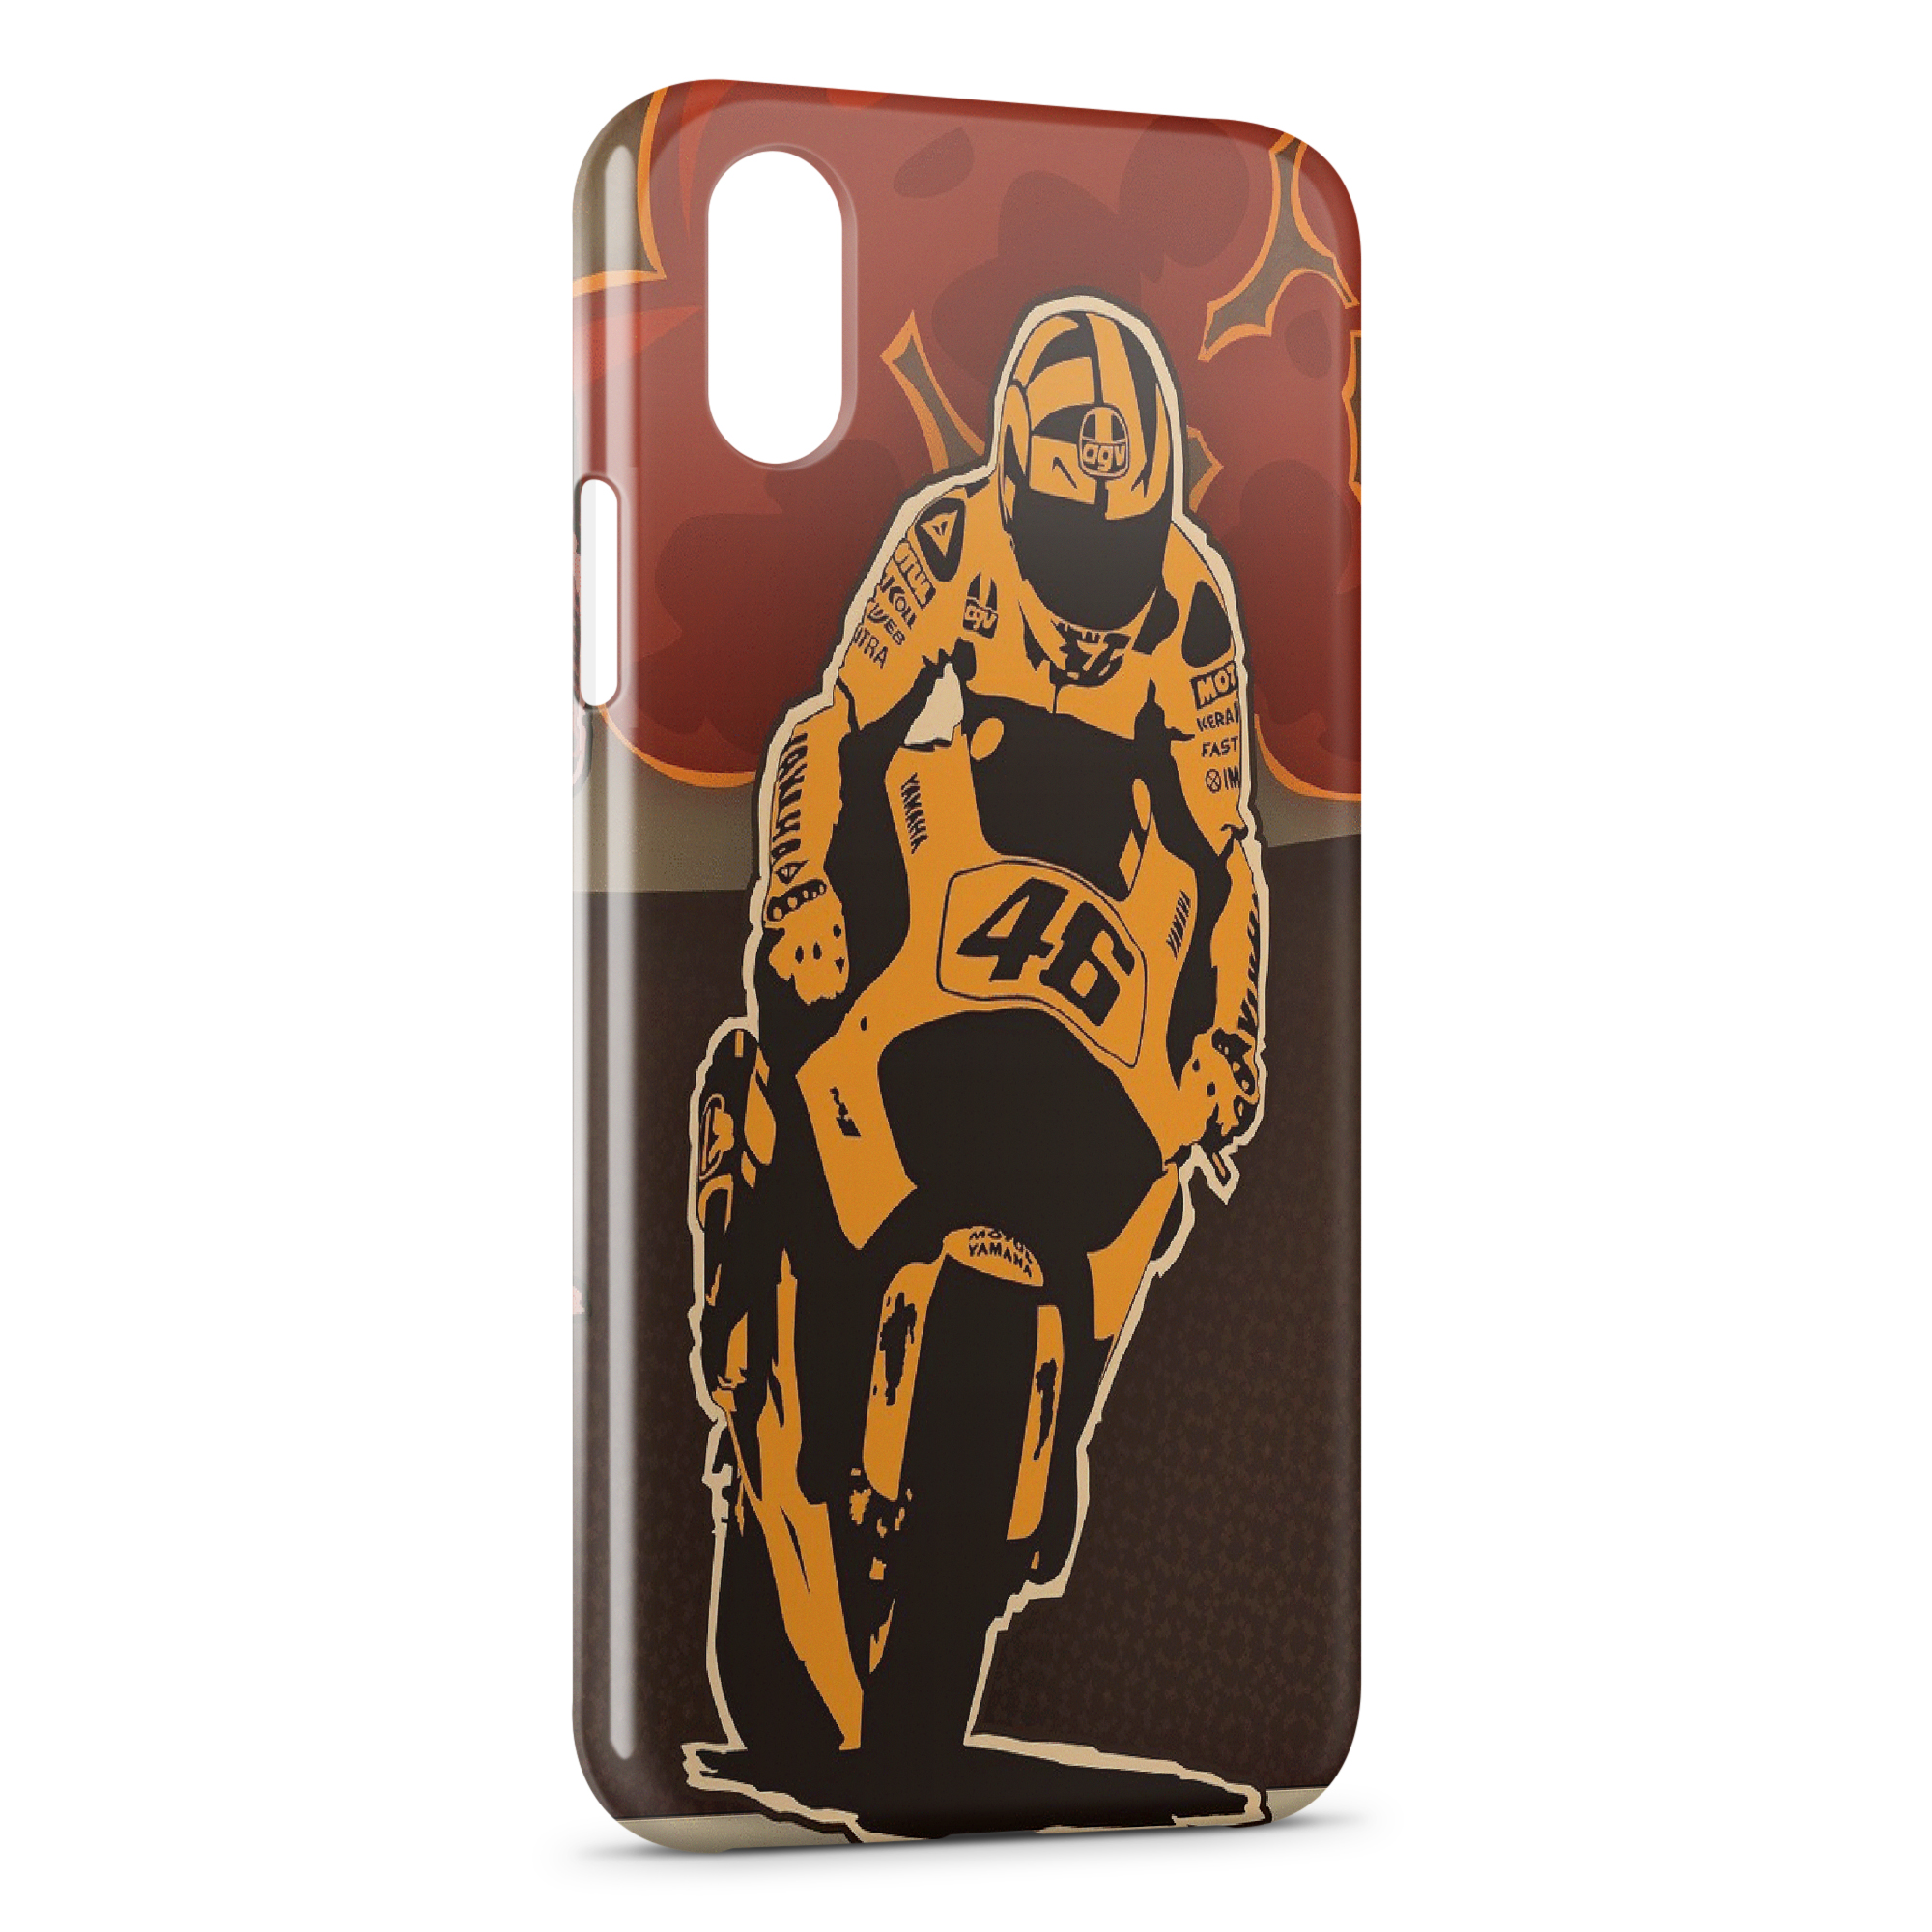 coque iphone xs max vr46